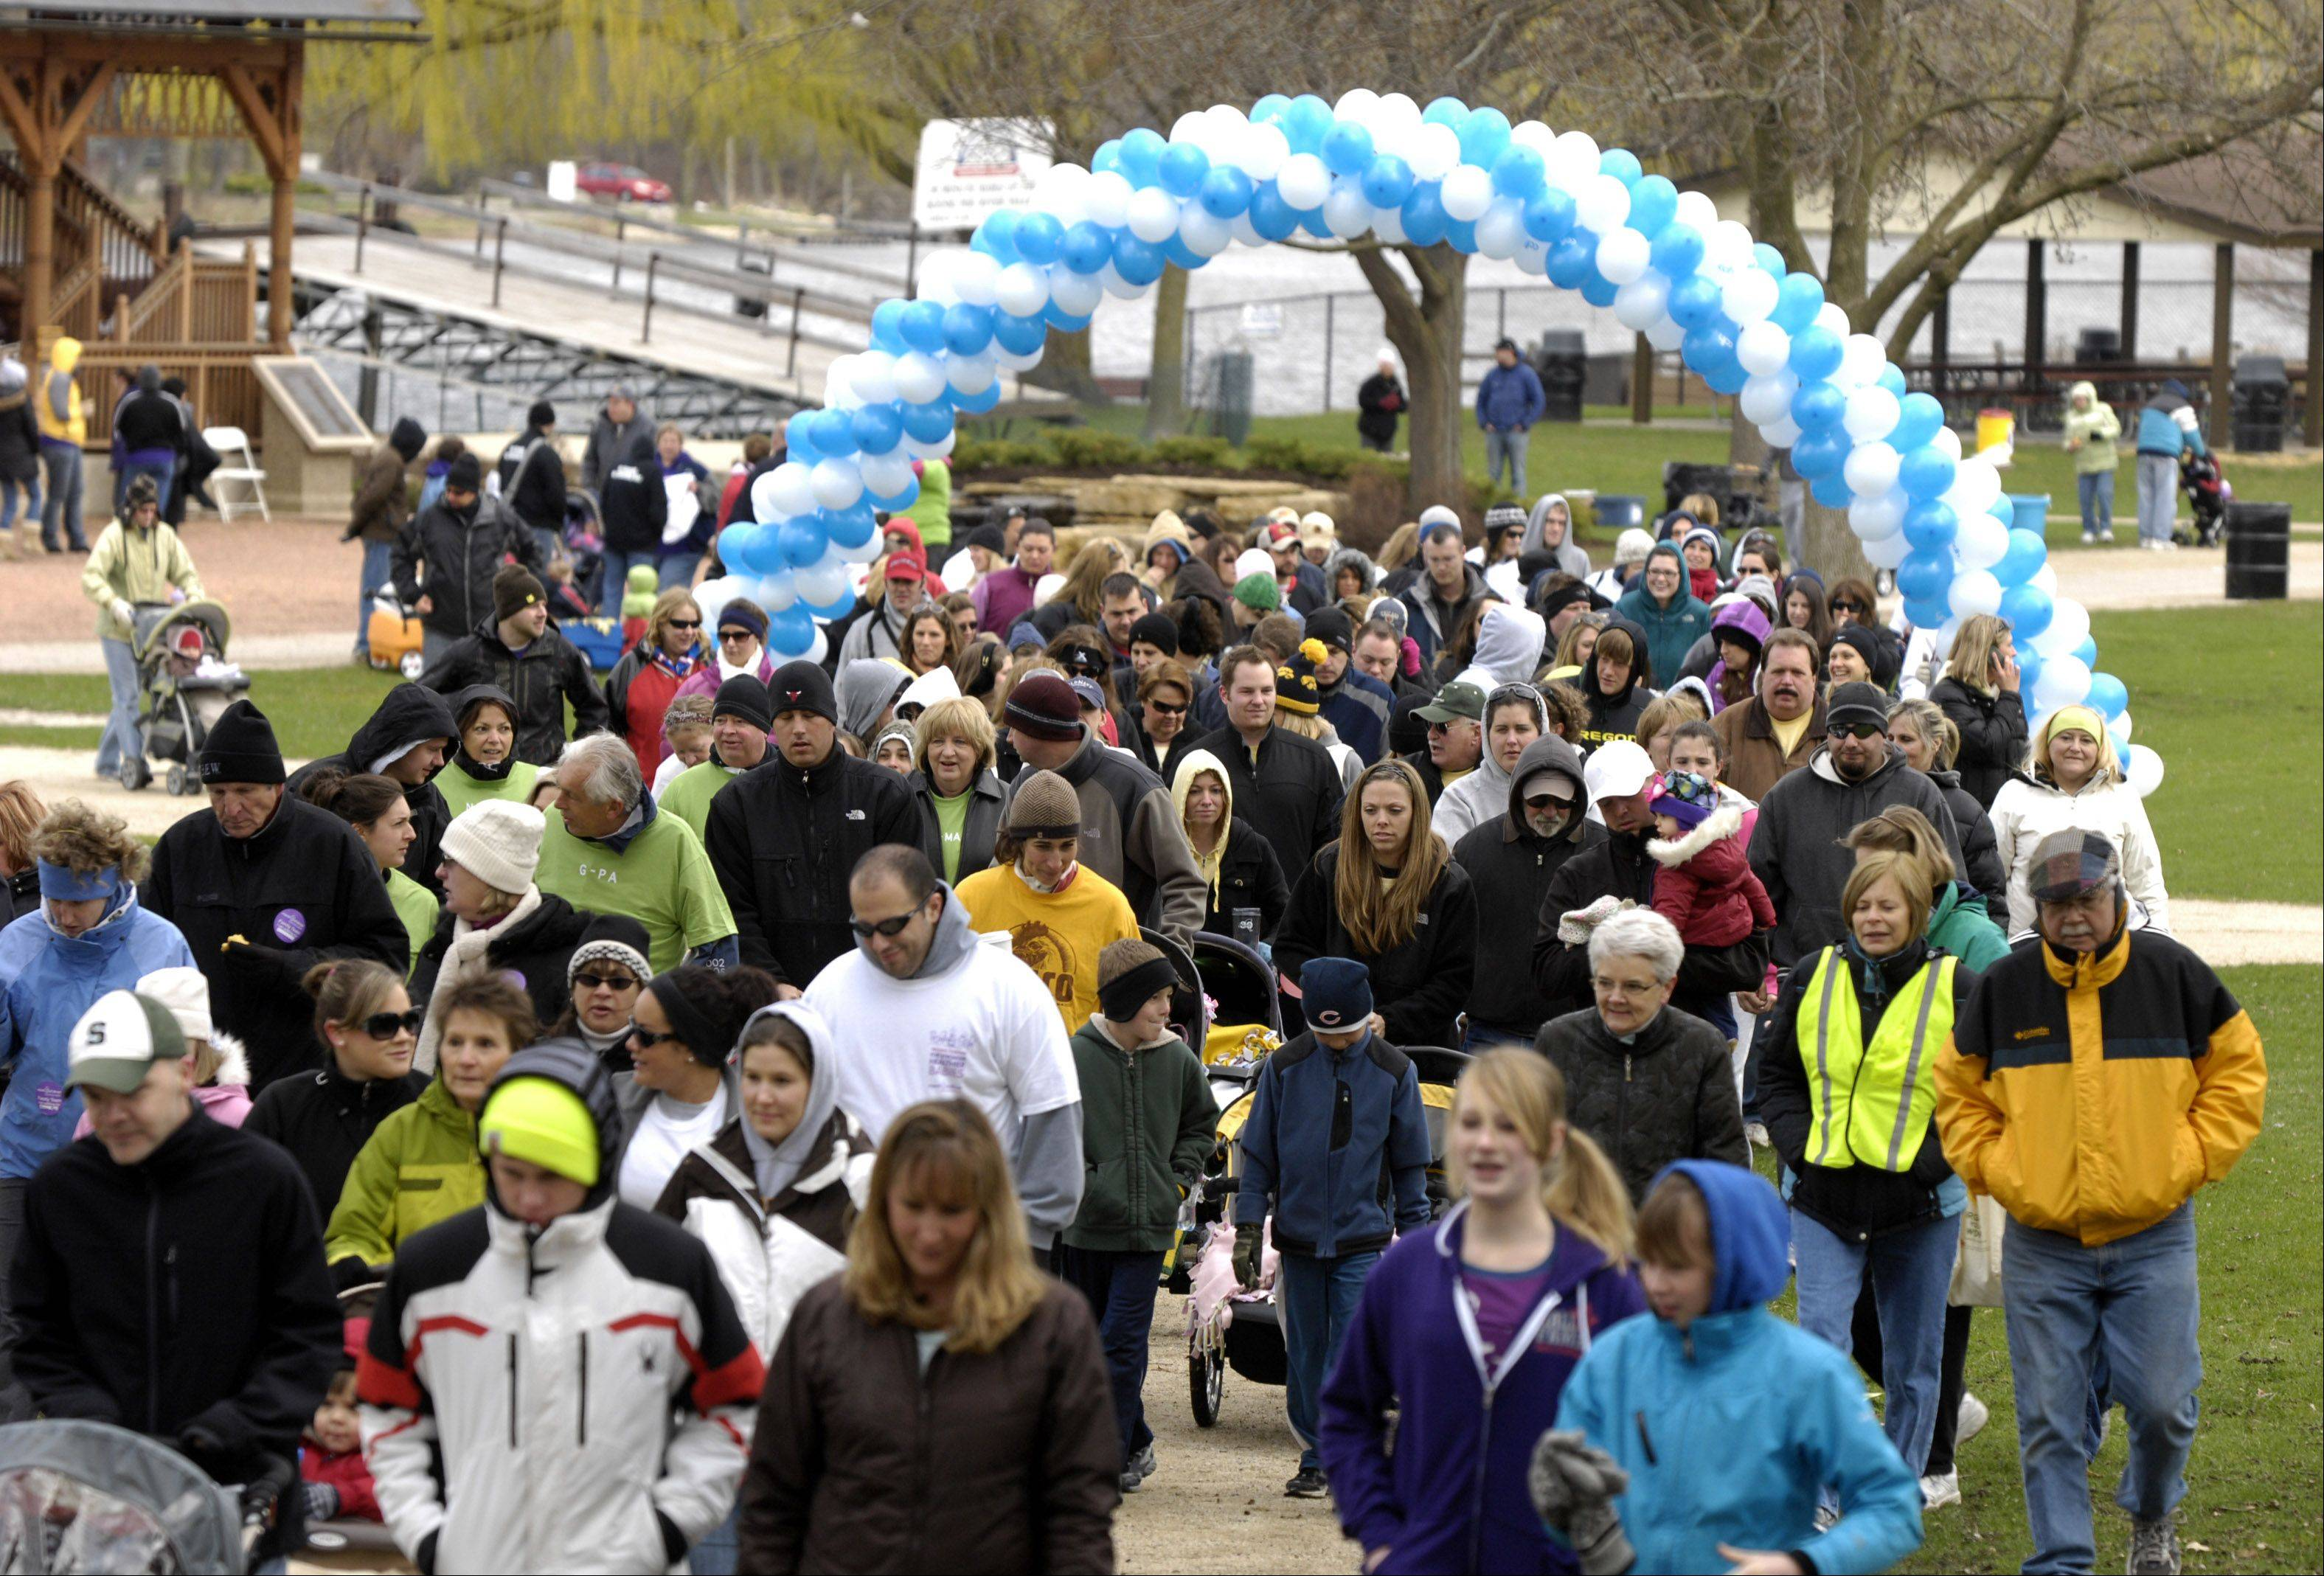 March for Babies funds research to help premature infants